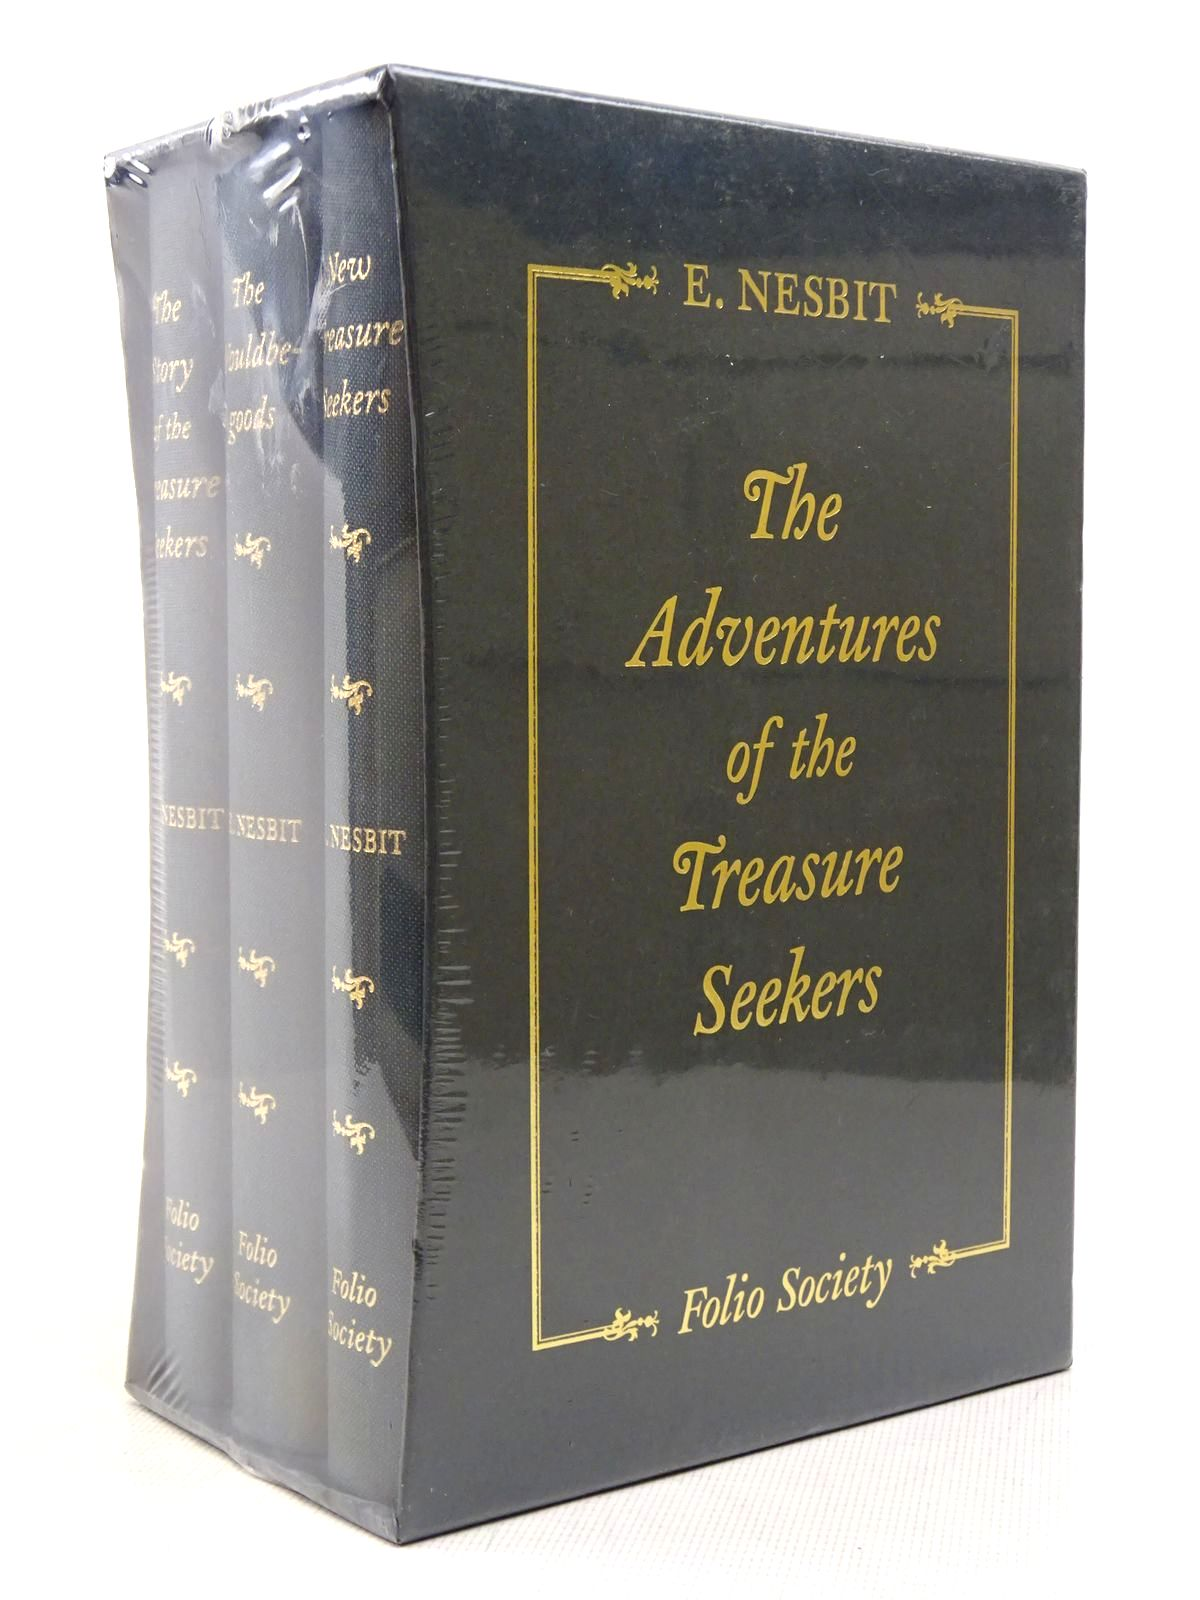 Photo of THE ADVENTURES OF THE TREASURE SEEKERS (3 VOLUMES) written by Nesbit, E. illustrated by Hodges, C. Walter published by Folio Society (STOCK CODE: 1817154)  for sale by Stella & Rose's Books